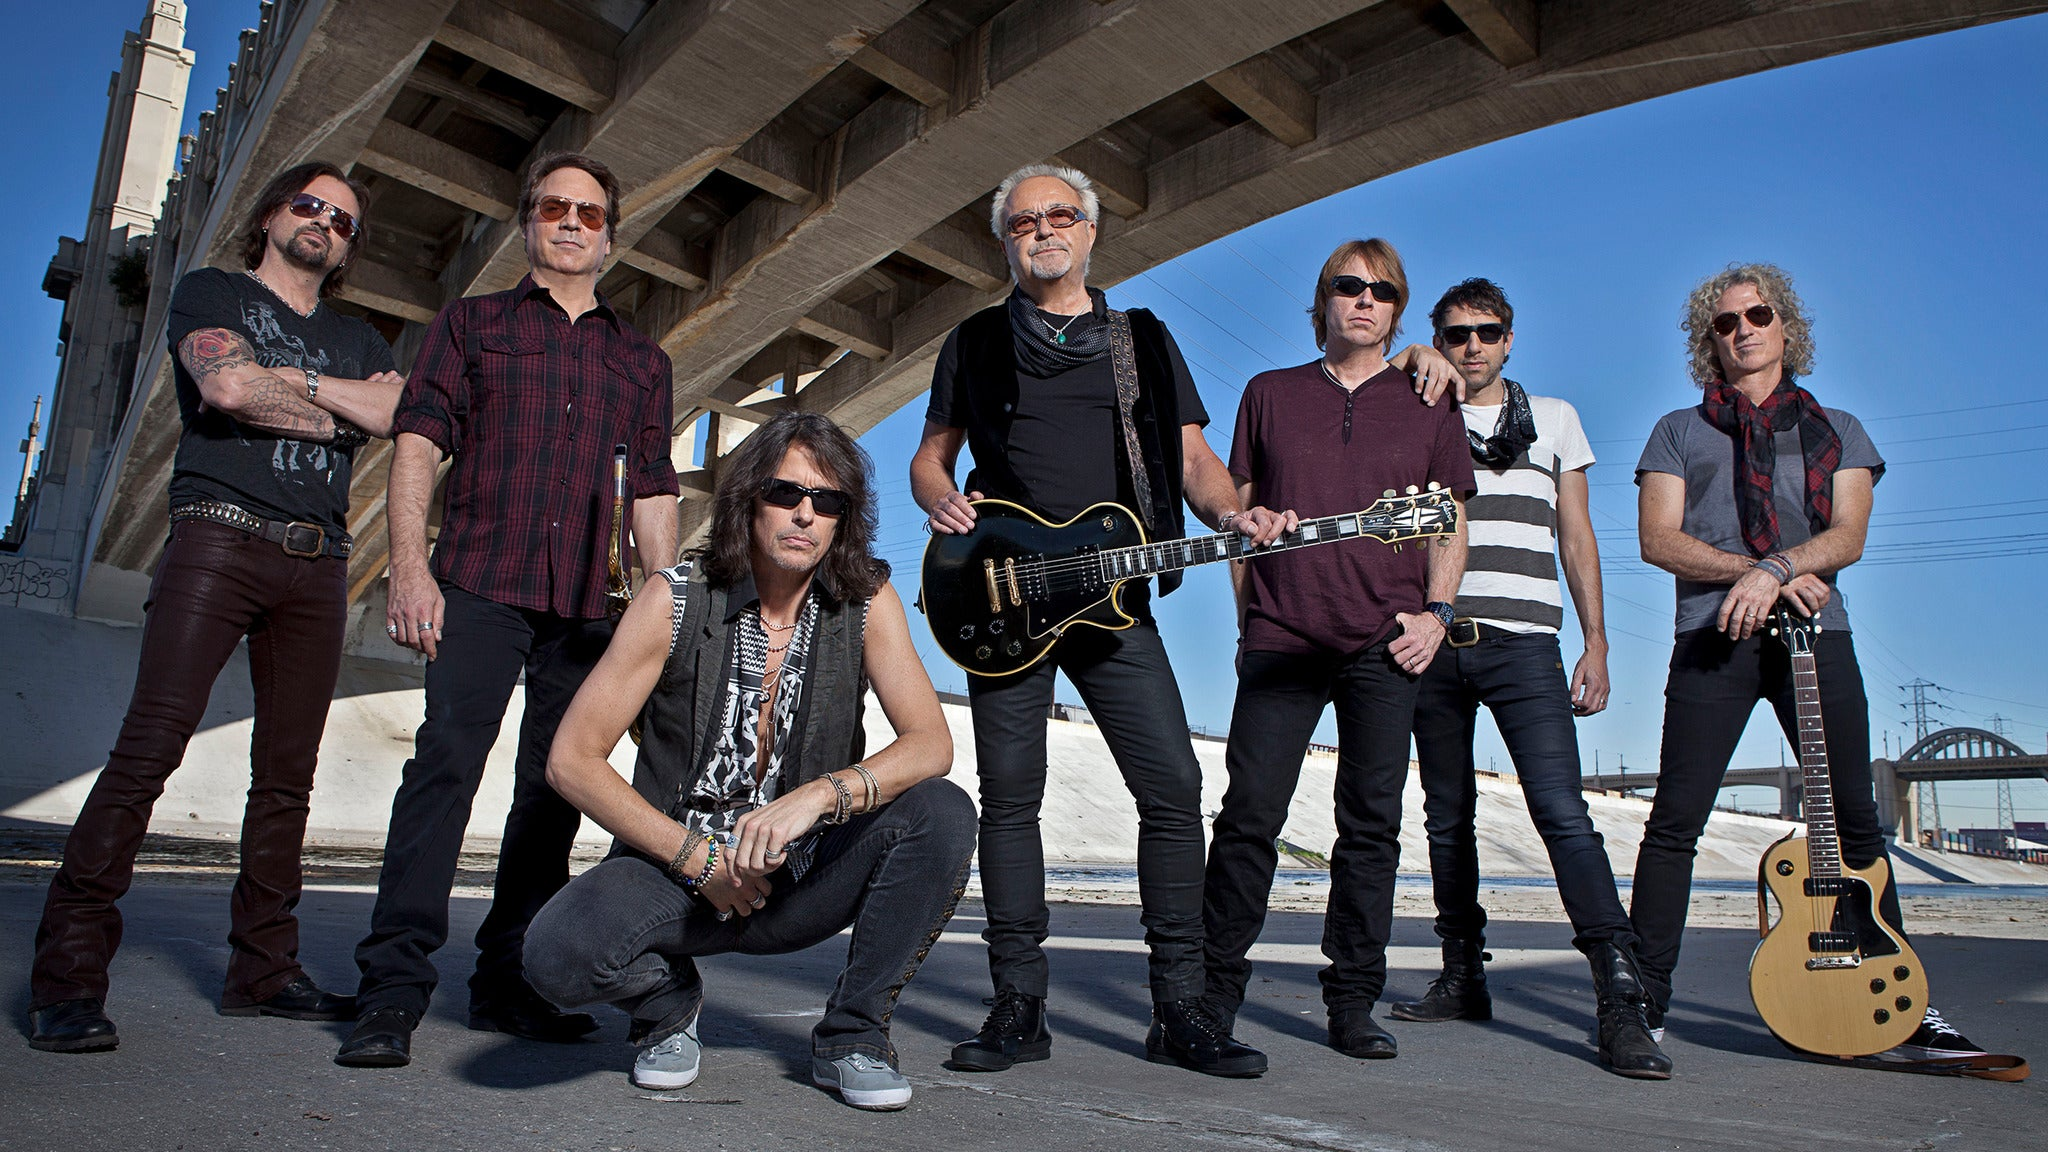 Foreigner at Butte Civic Center - MT - Butte, MT 59701